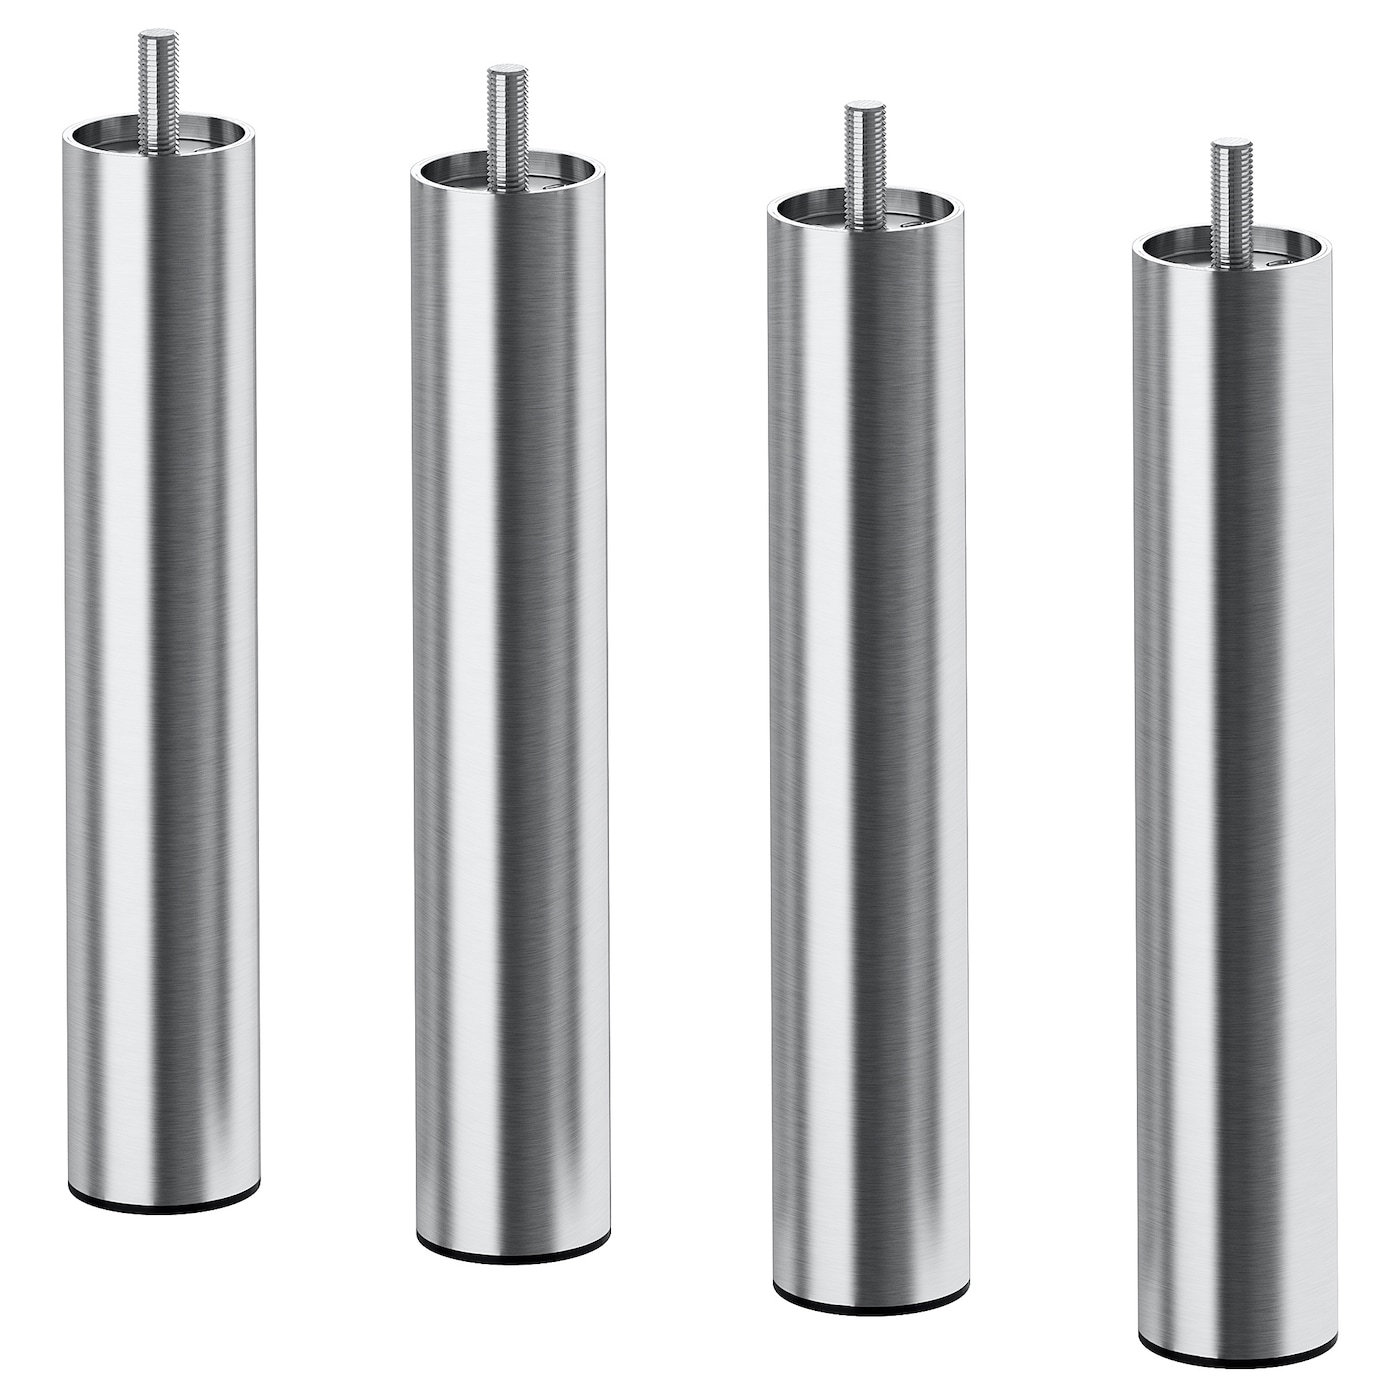 IKEA BJORLI leg Durable and easy to clean as it is made of stainless steel.